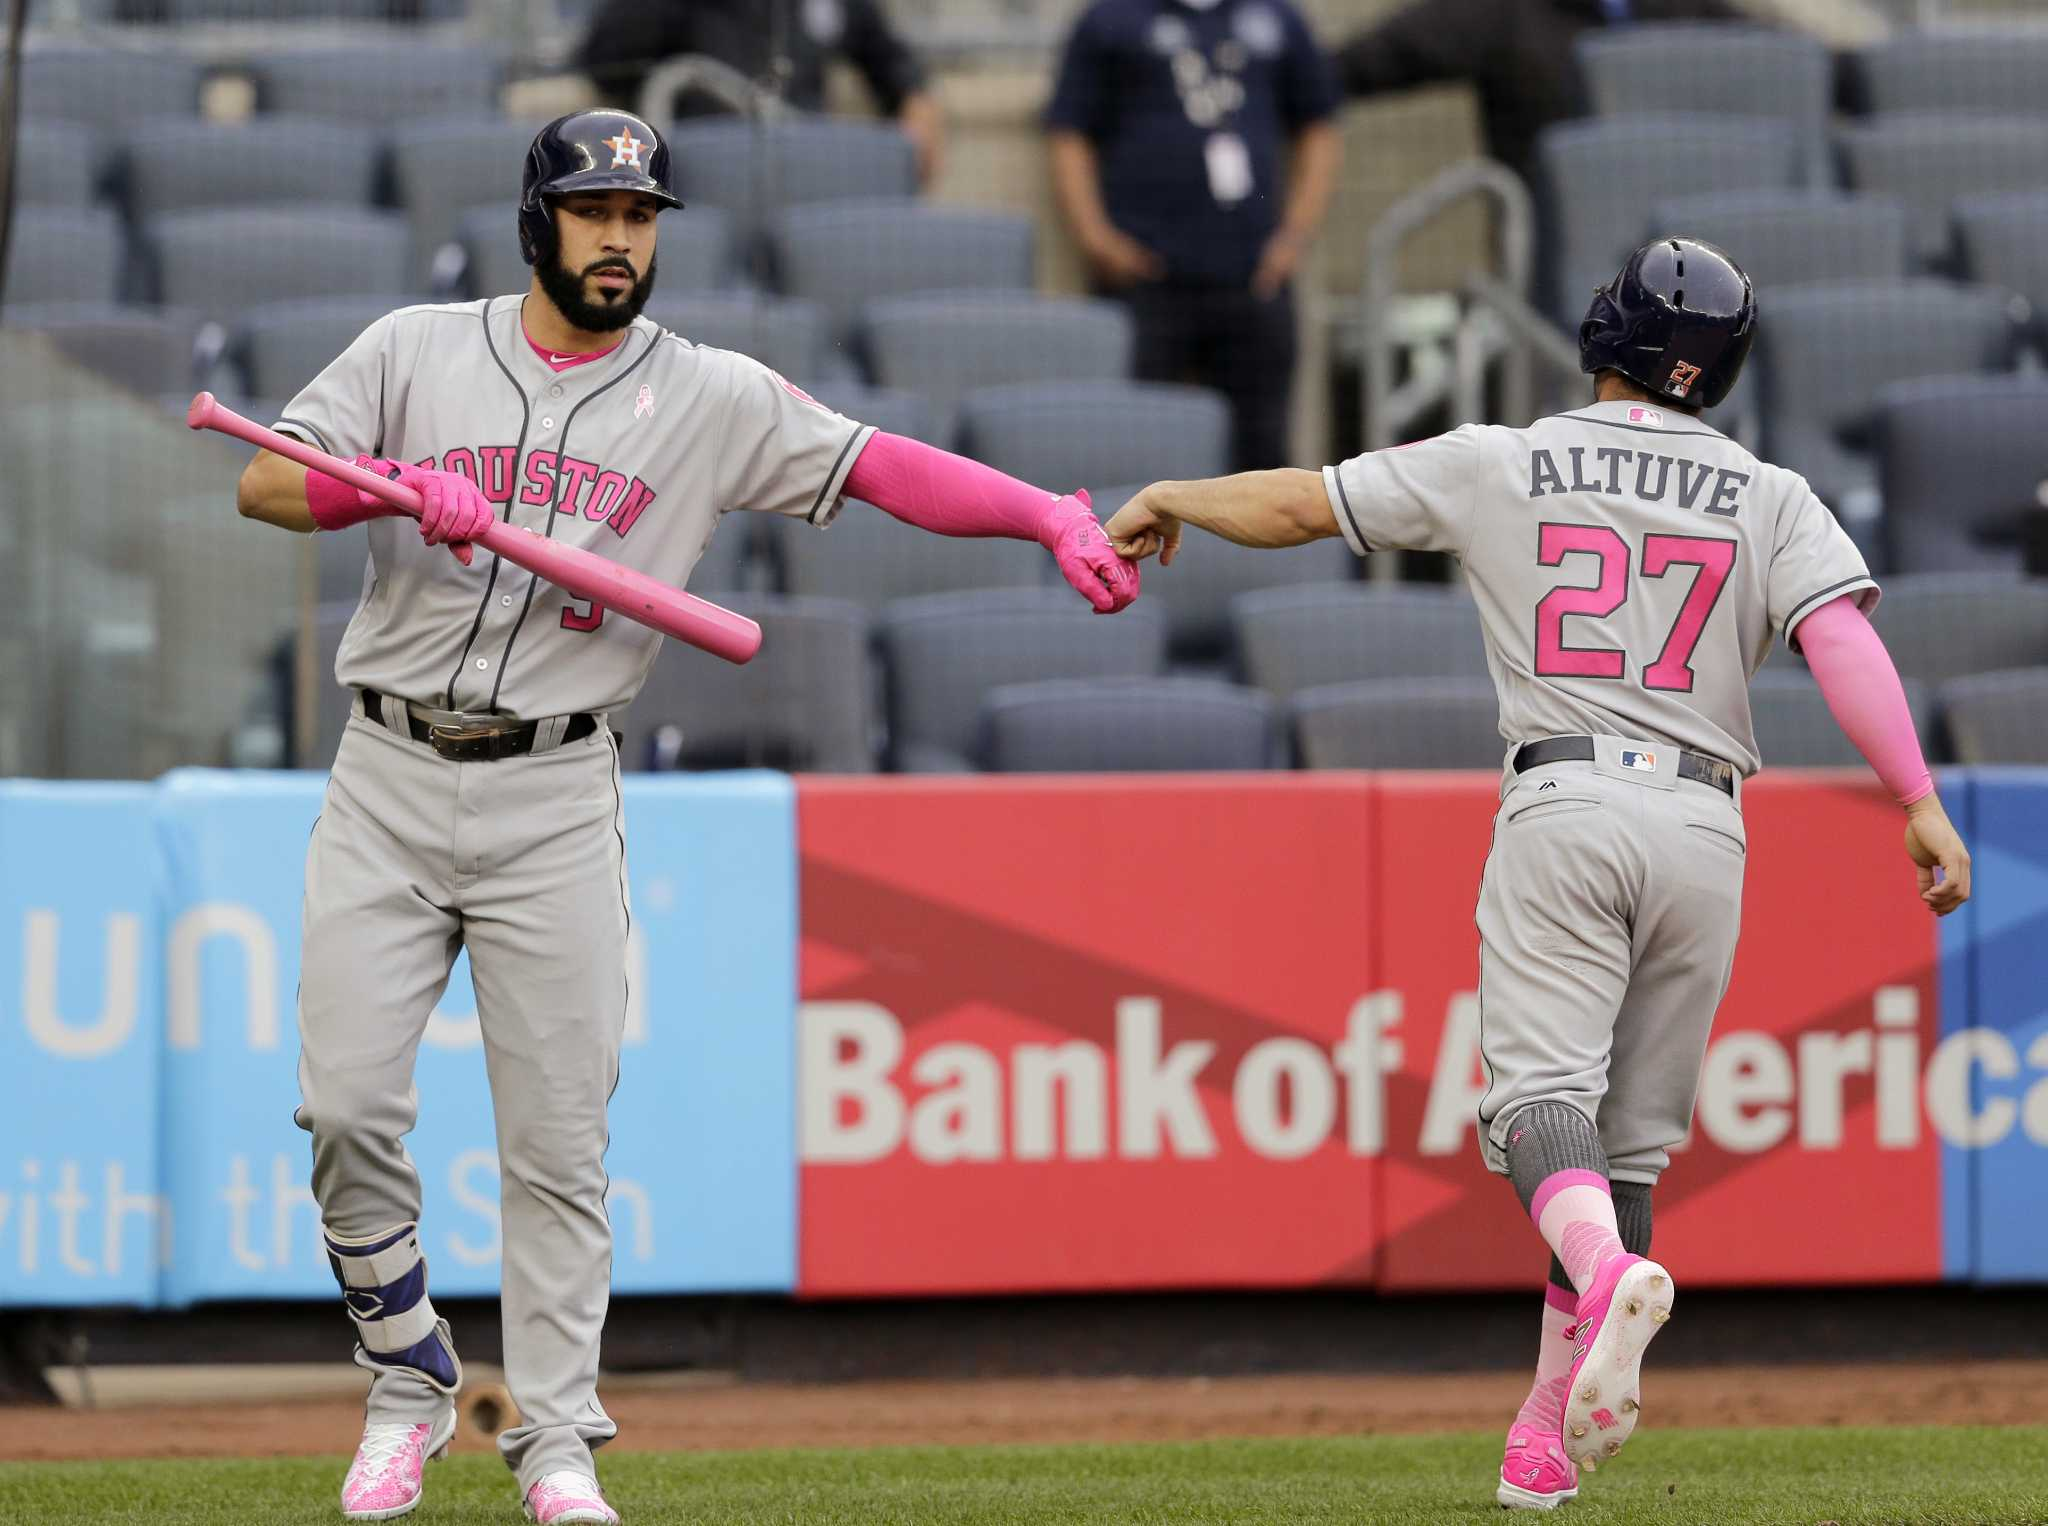 aa6858b6c11 The curious case of Astros star Jose Altuve s pink Mother s Day cleat -  Houston Chronicle